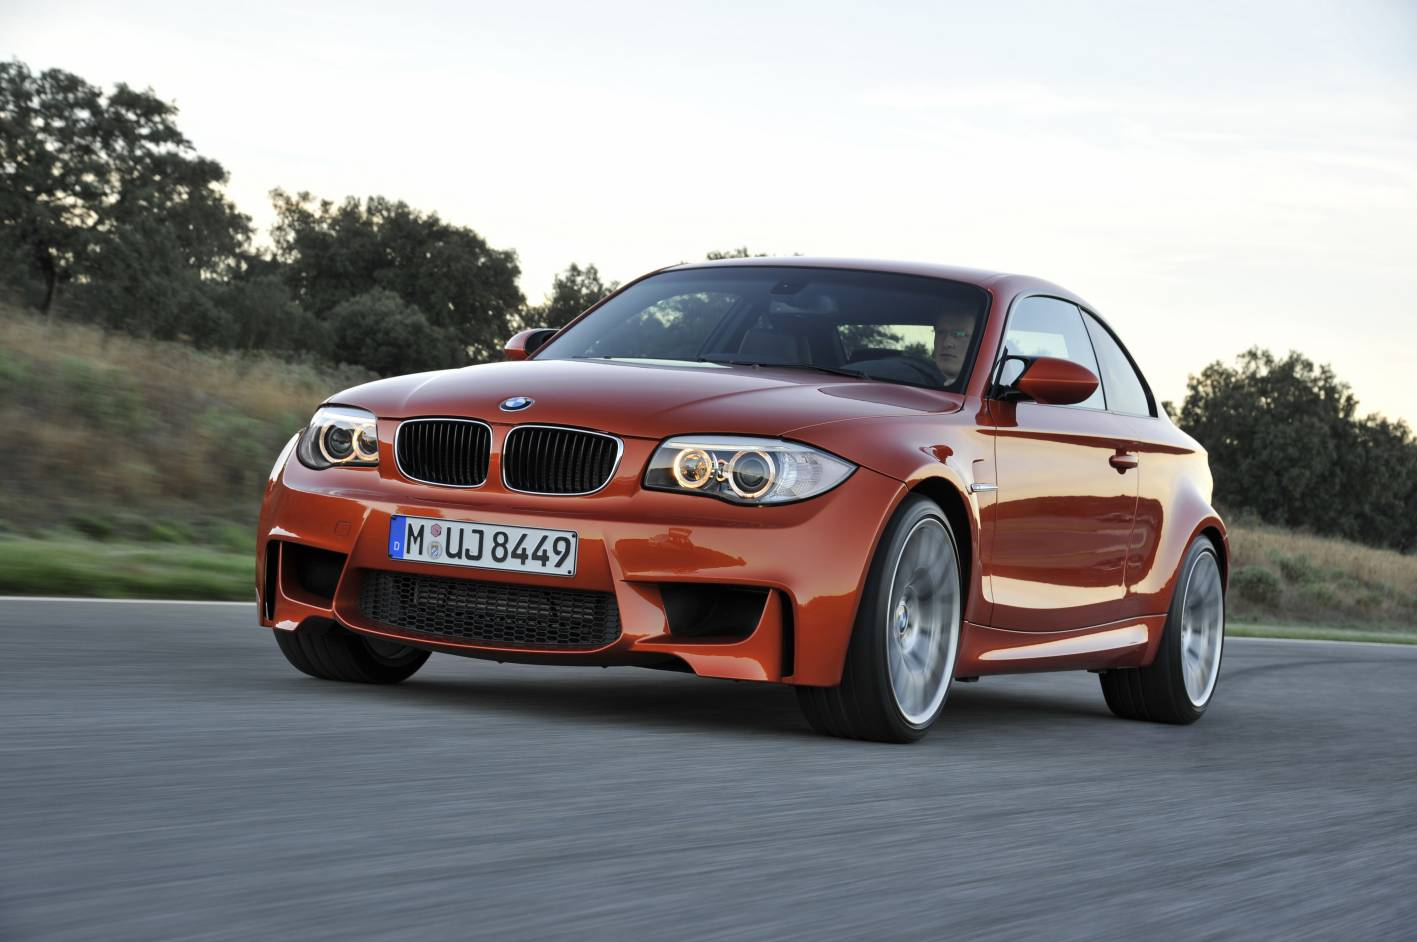 bmw m2 on the way more powerful than m235i rumour performancedrive. Black Bedroom Furniture Sets. Home Design Ideas